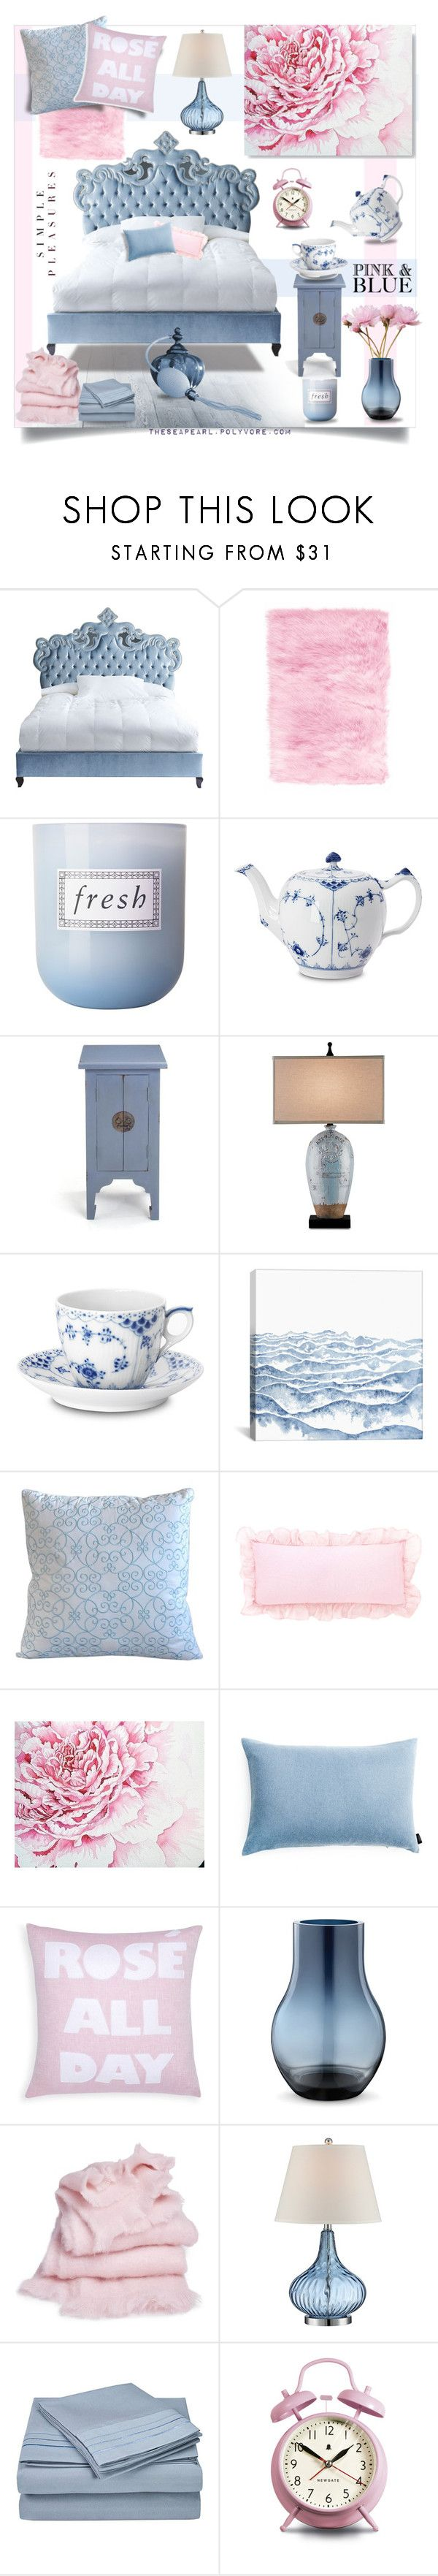 """Pantone 2016 Bedroom: Simple Pleasures"" by theseapearl ❤ liked on Polyvore featuring interior, interiors, interior design, home, home decor, interior decorating, Haute House, Home Decorators Collection, Fresh and Royal Copenhagen"